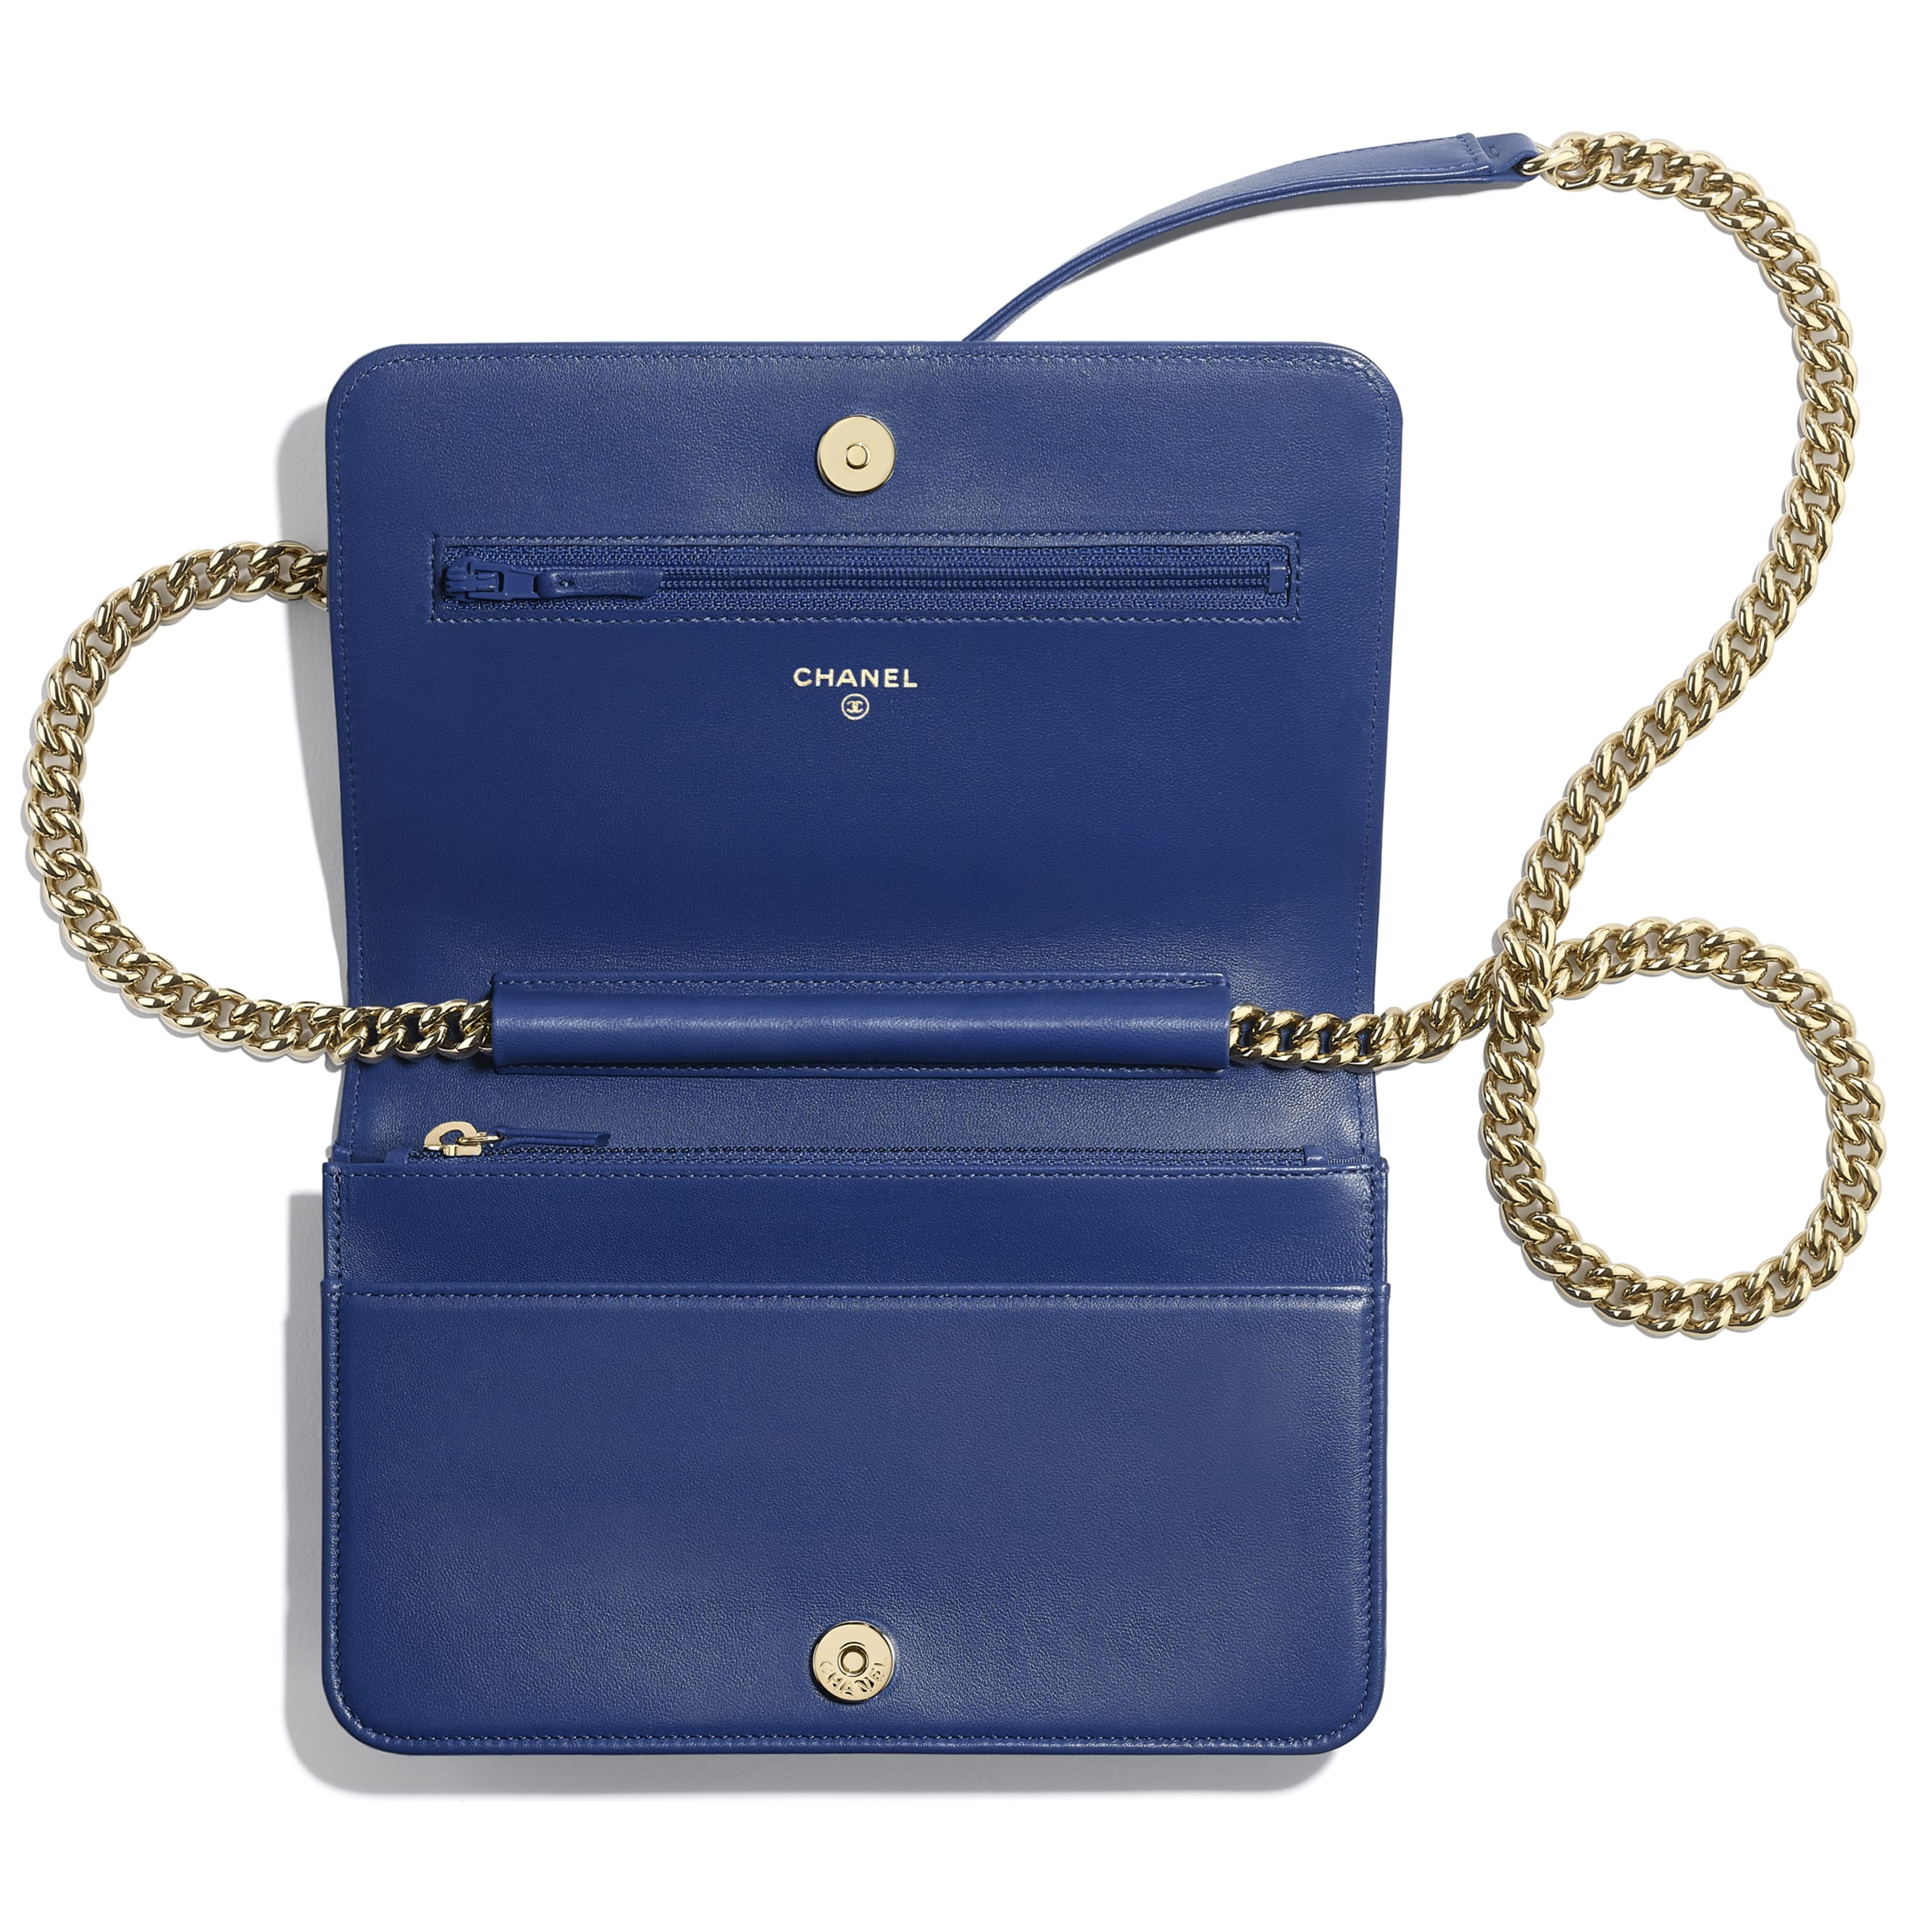 BOY CHANEL Wallet on Chain - Dark Blue - Lambskin & Gold-Tone Metal - CHANEL - Other view - see standard sized version